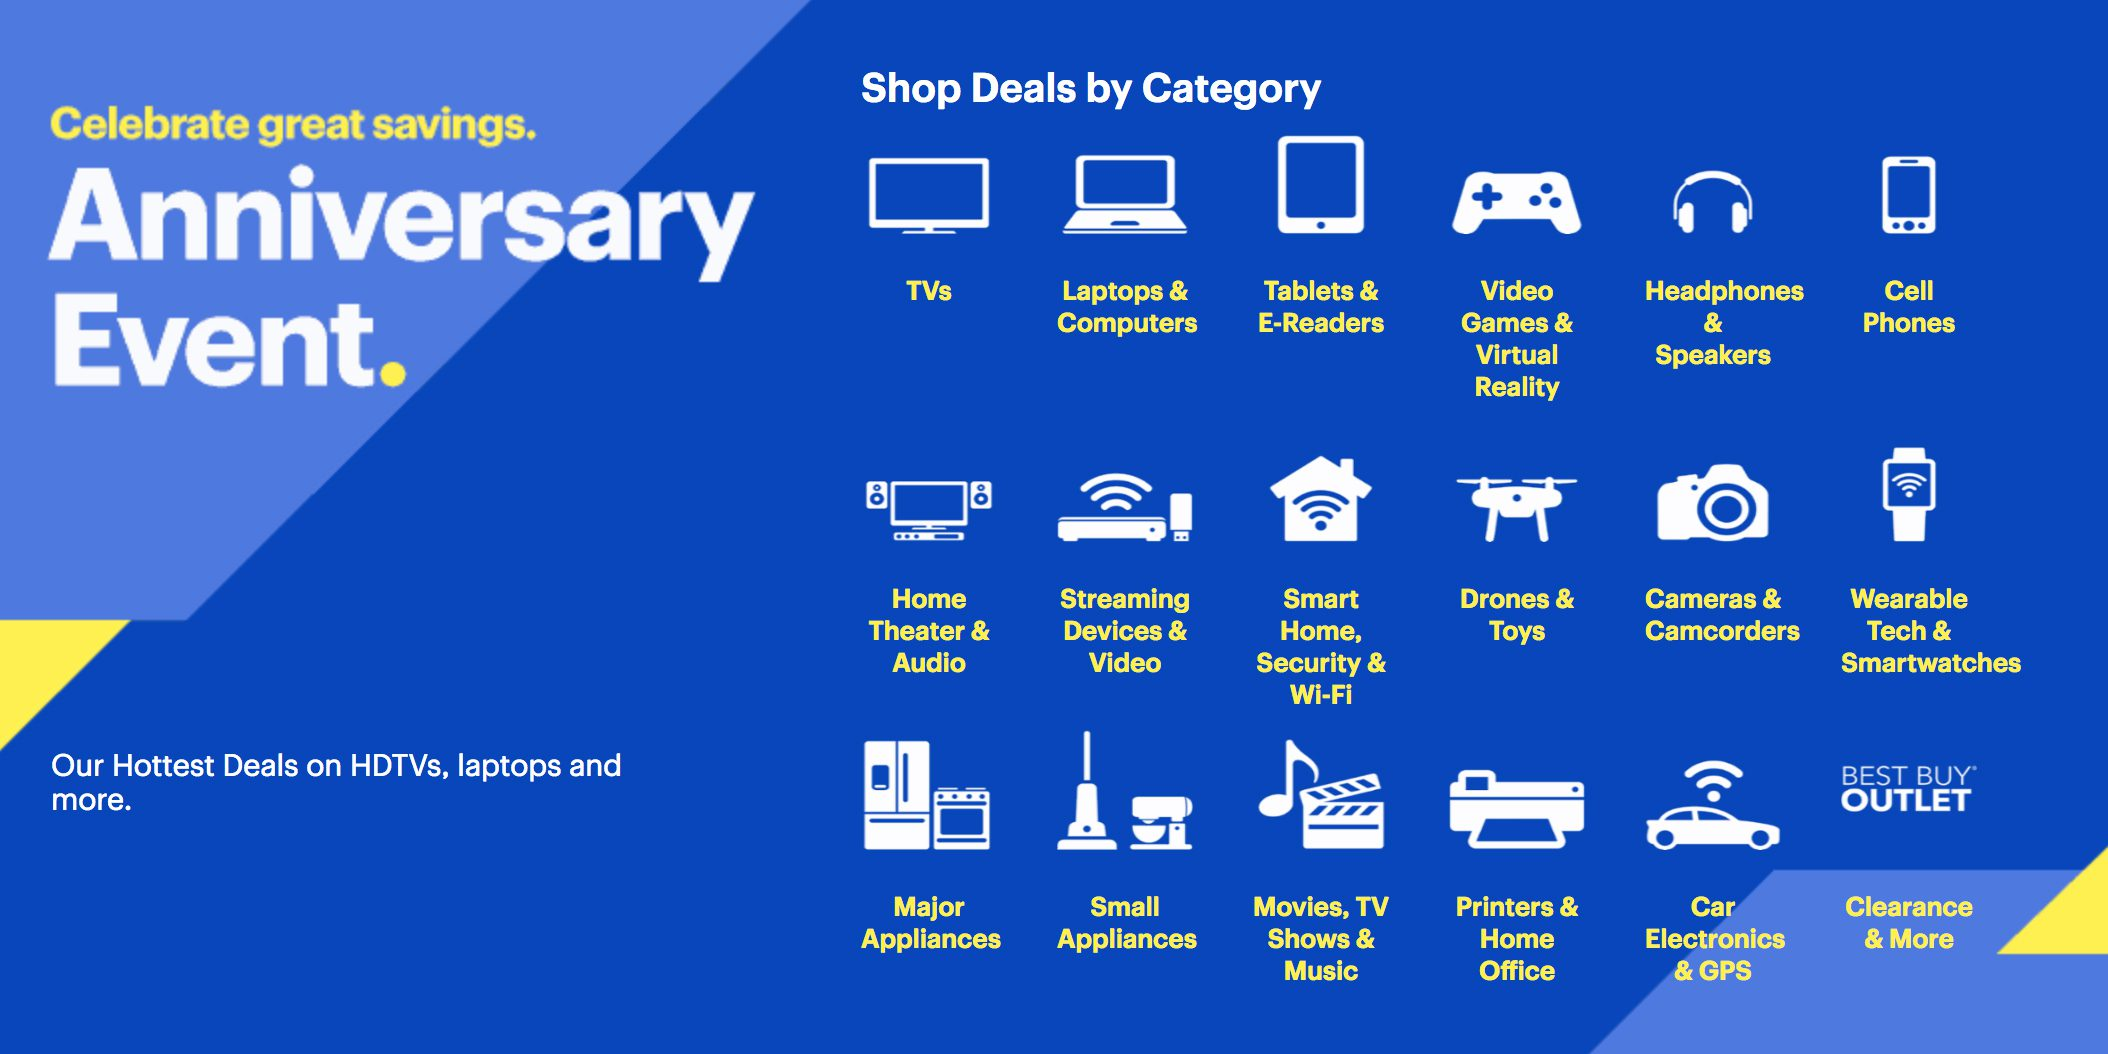 9to5Toys Last Call  Anker 1-Day Accessory Sale from  8 122bcc4b18ba6